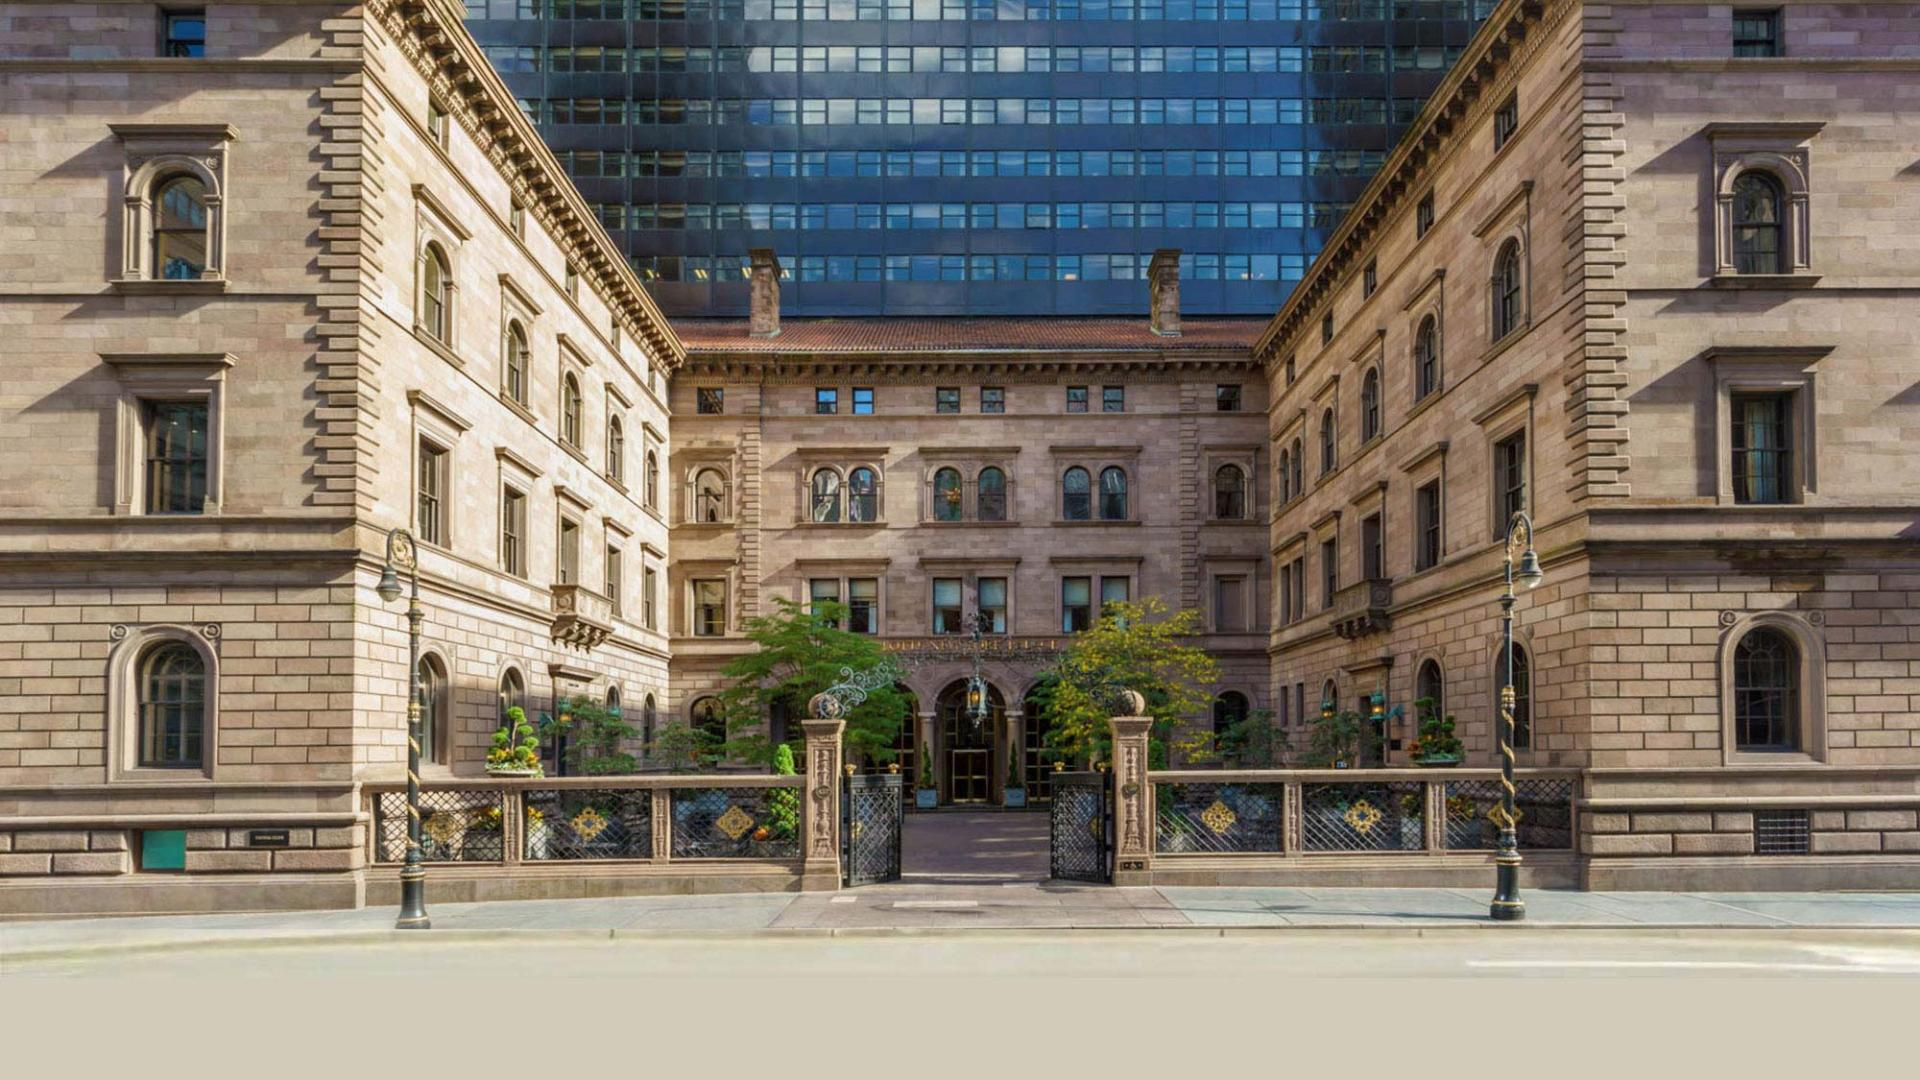 Lotte Hotel Global - Maine - Main image - New York Palace Photos